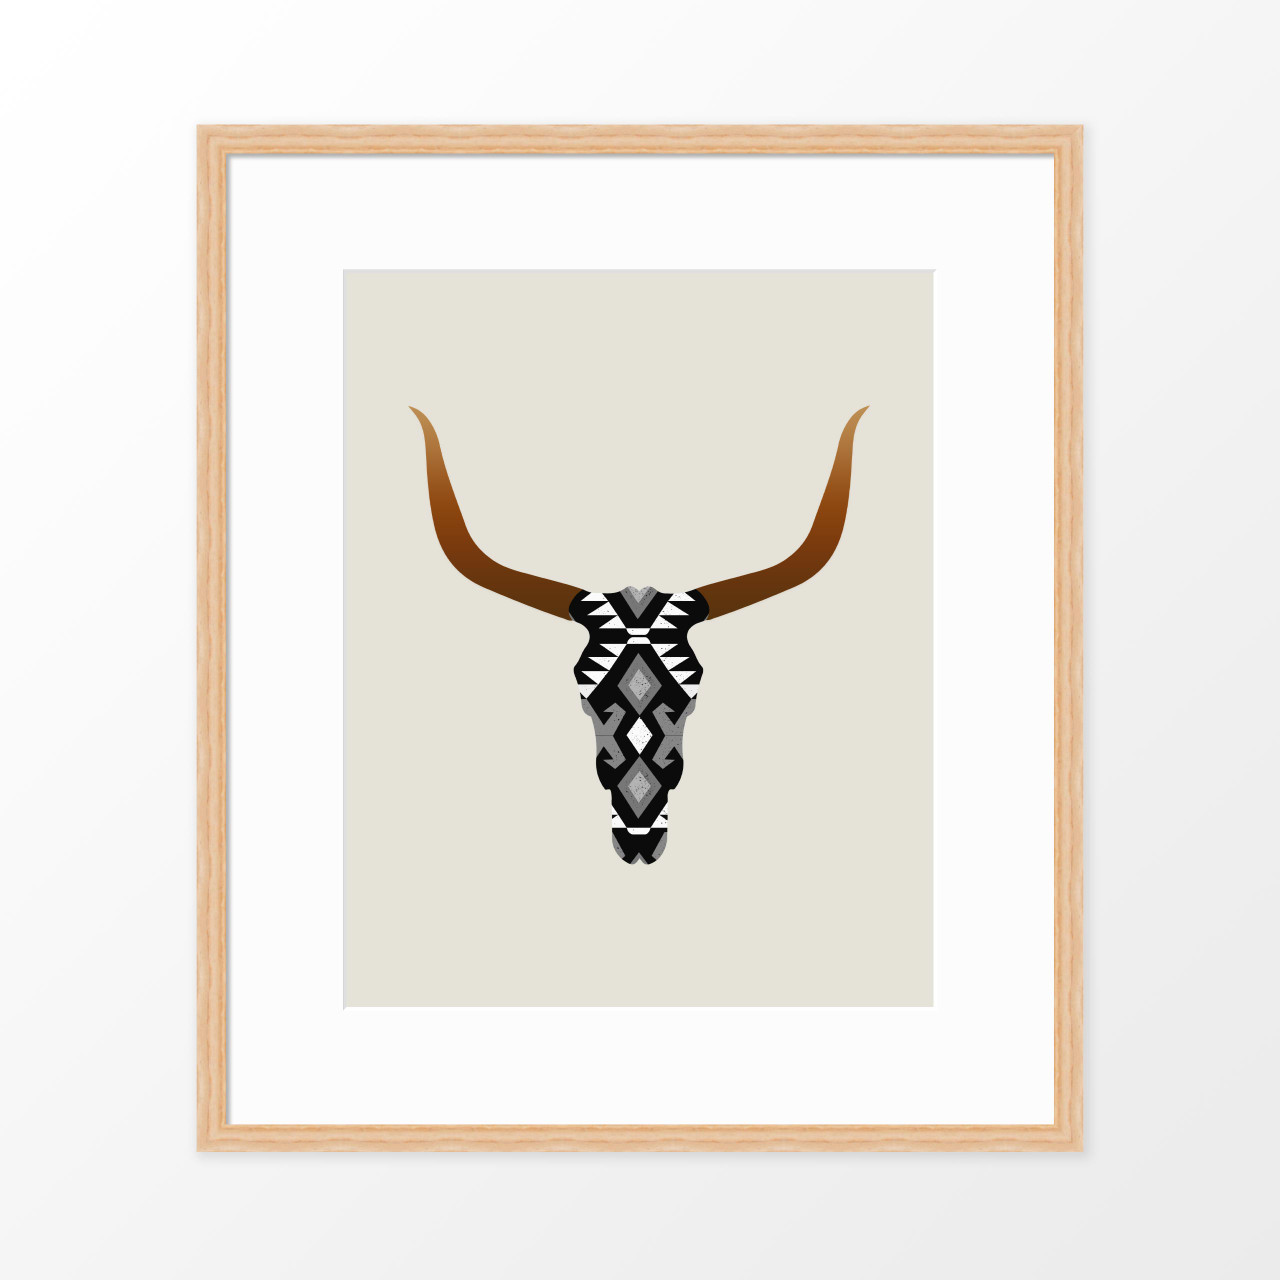 'Longhorn Skull' Art Poster in Black from The Printed Home (Printable)